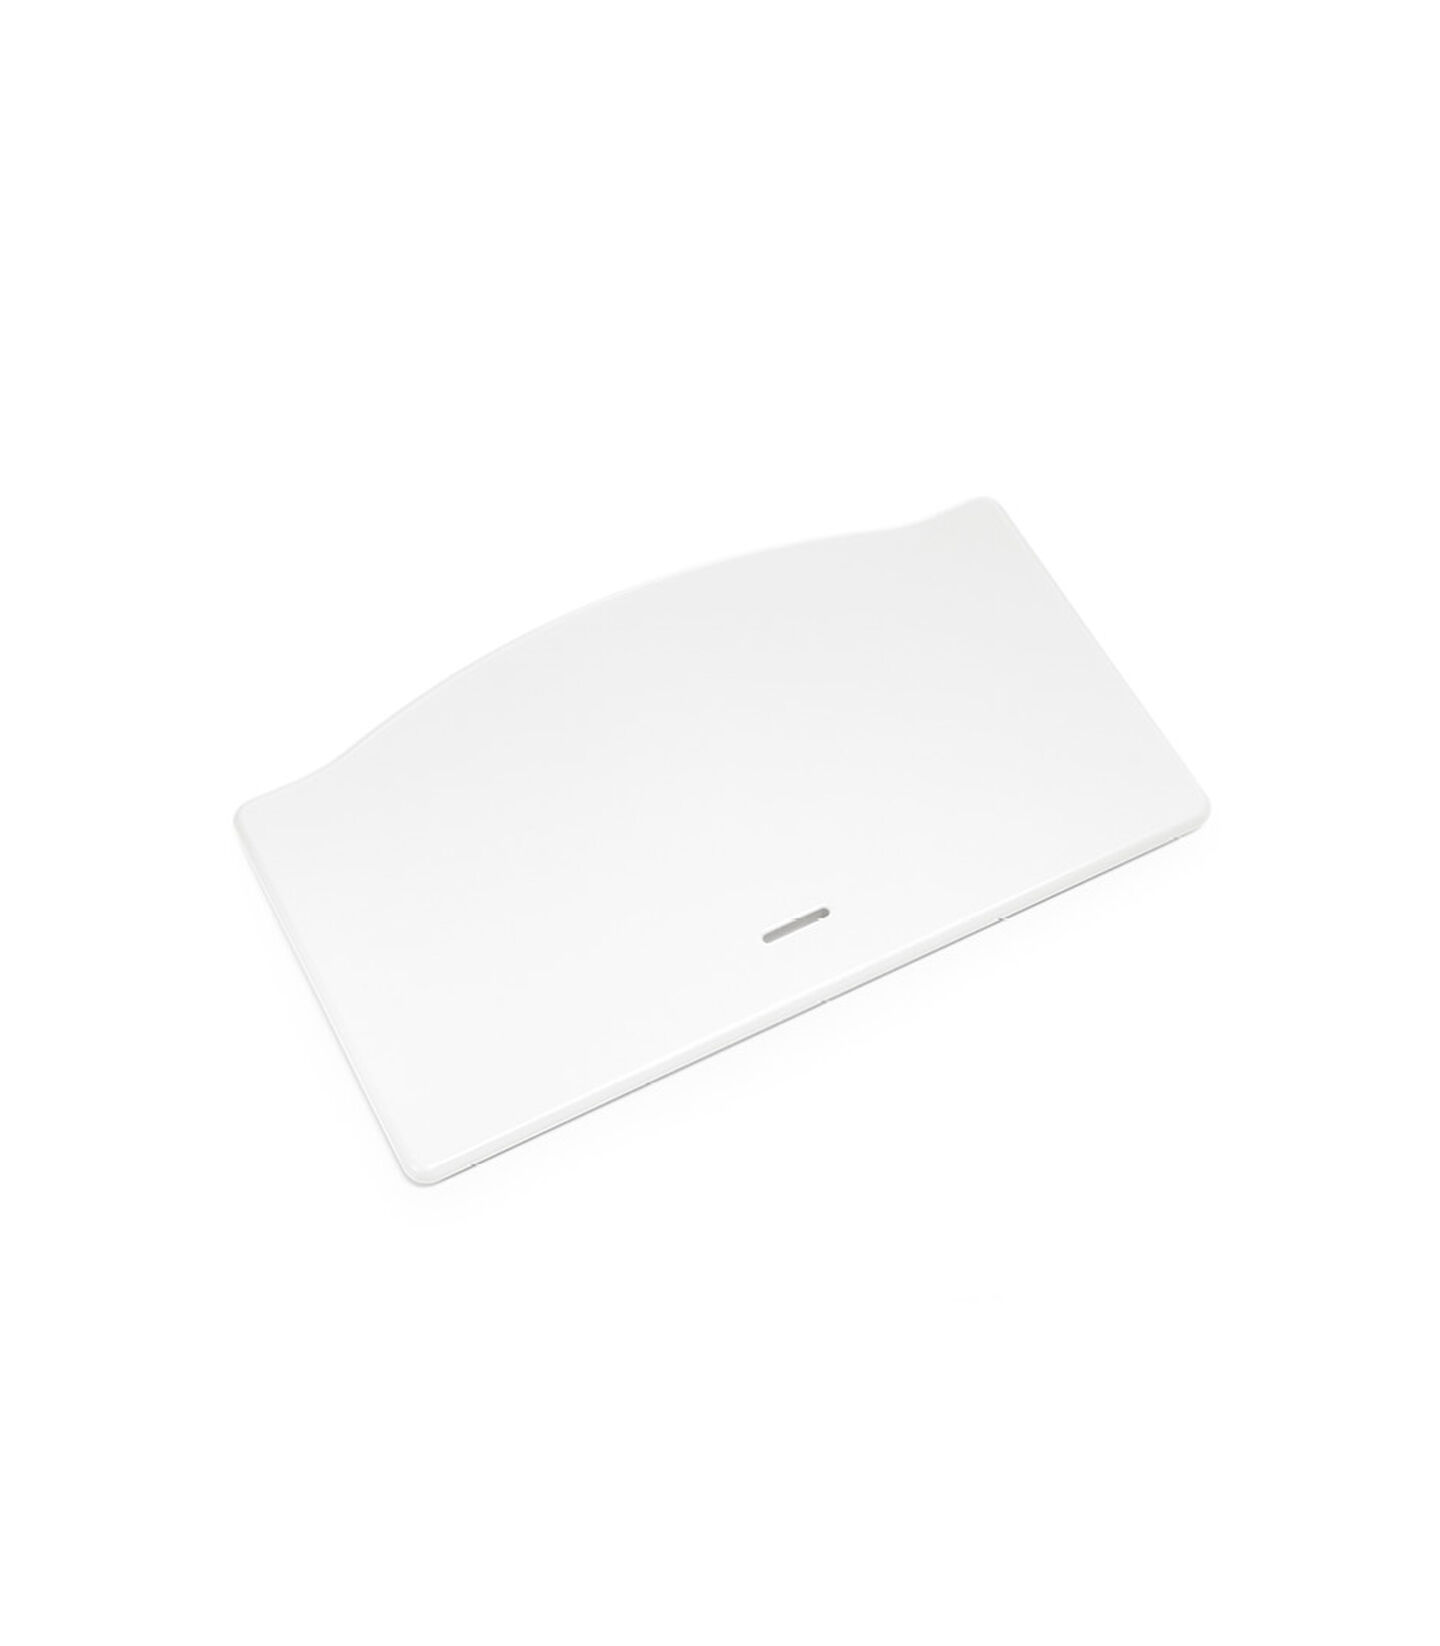 Tripp Trapp® Asientoplate Blanco, Blanco, mainview view 2